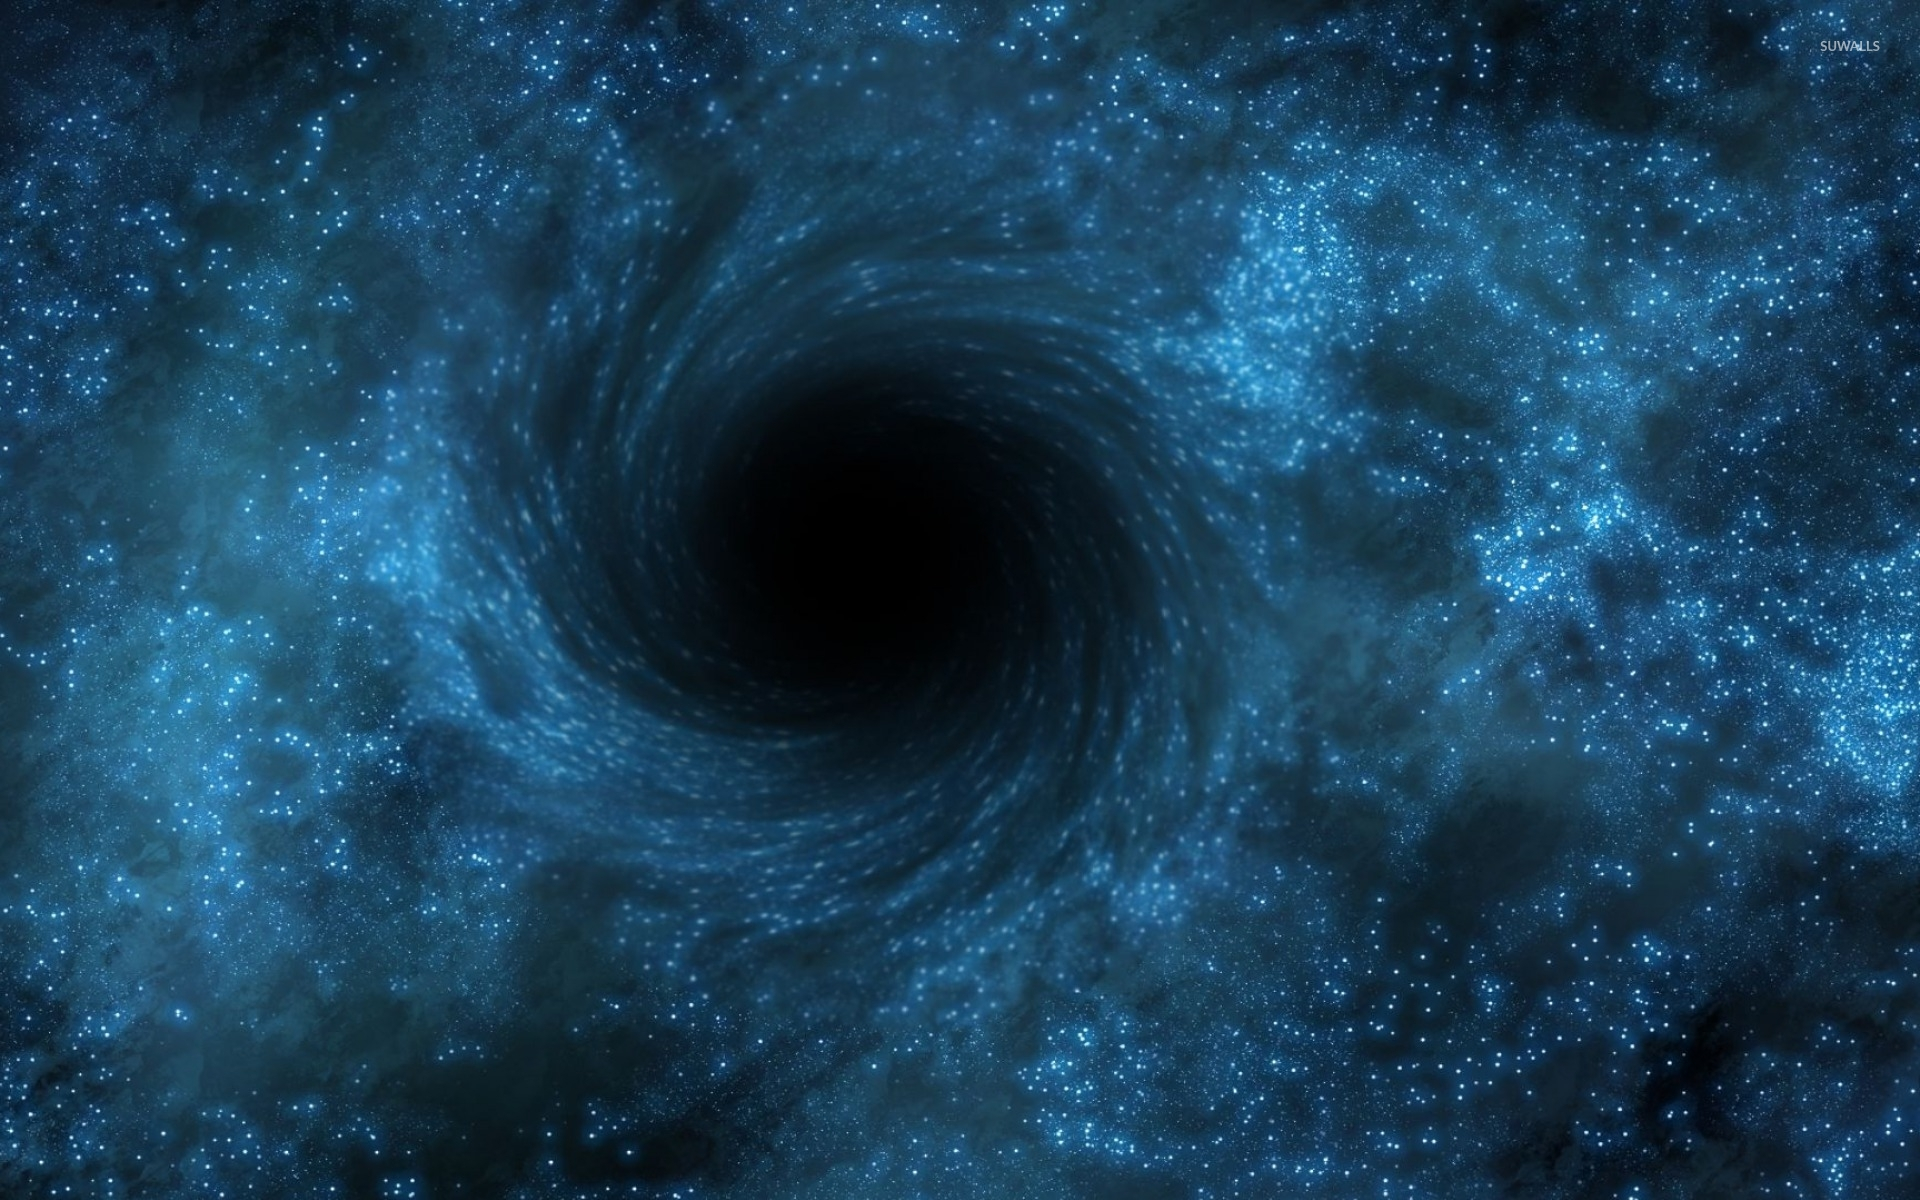 Black hole [6] wallpaper - Space wallpapers - #33895